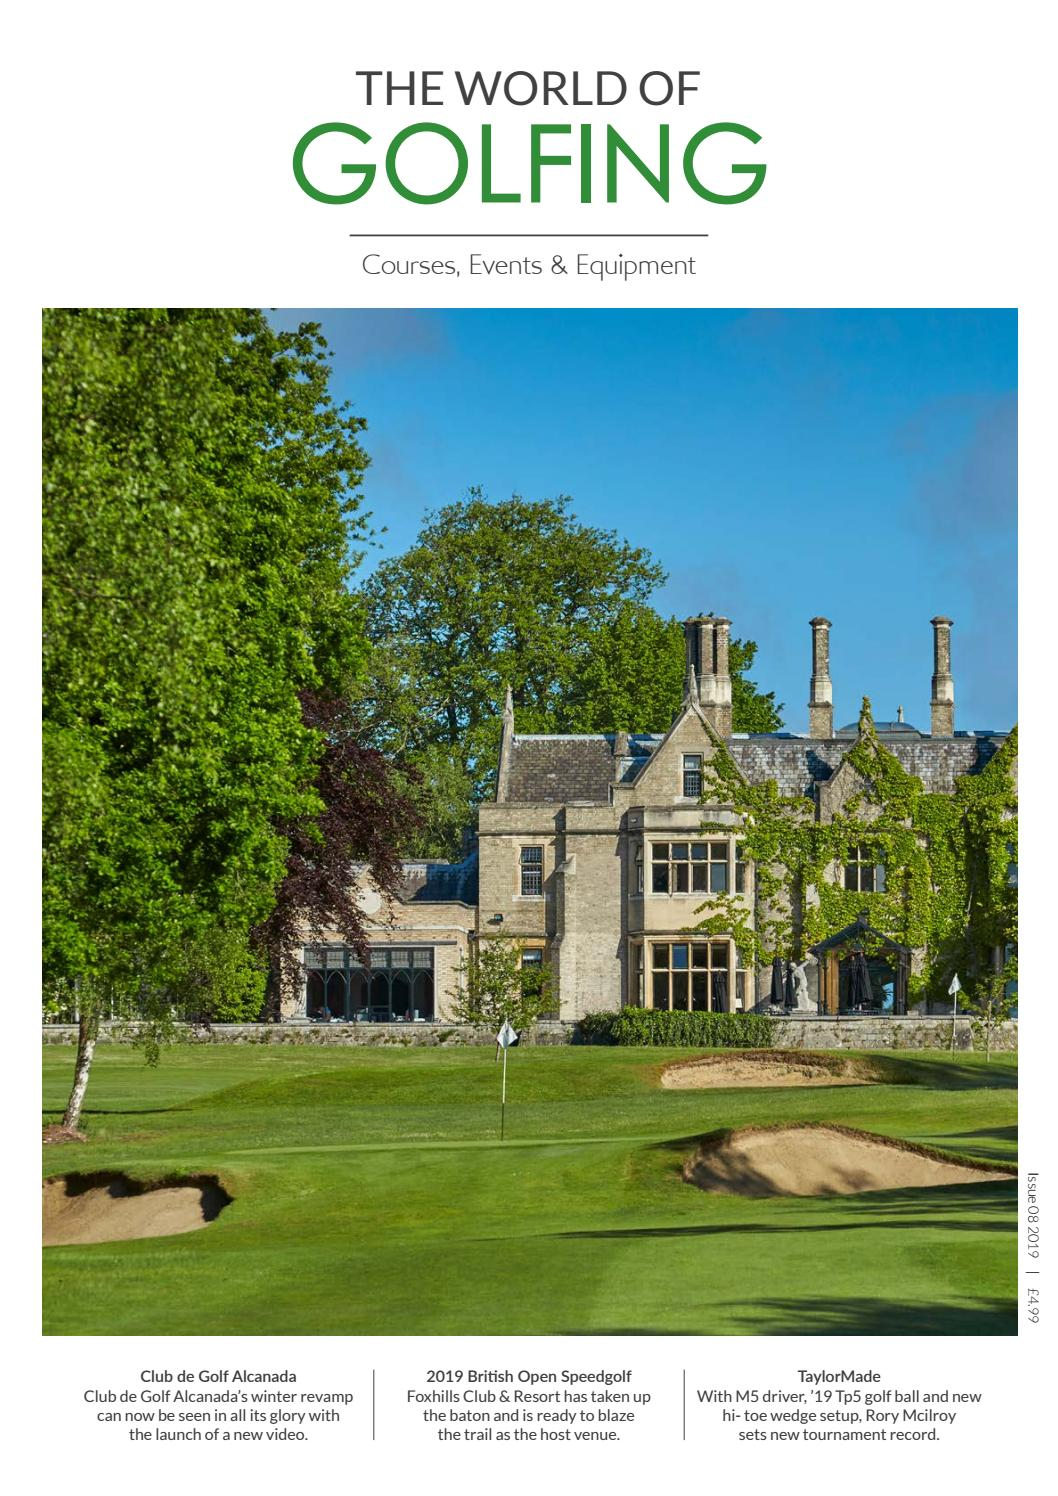 The World Of Golfing Issue 08 2019 By The World Of